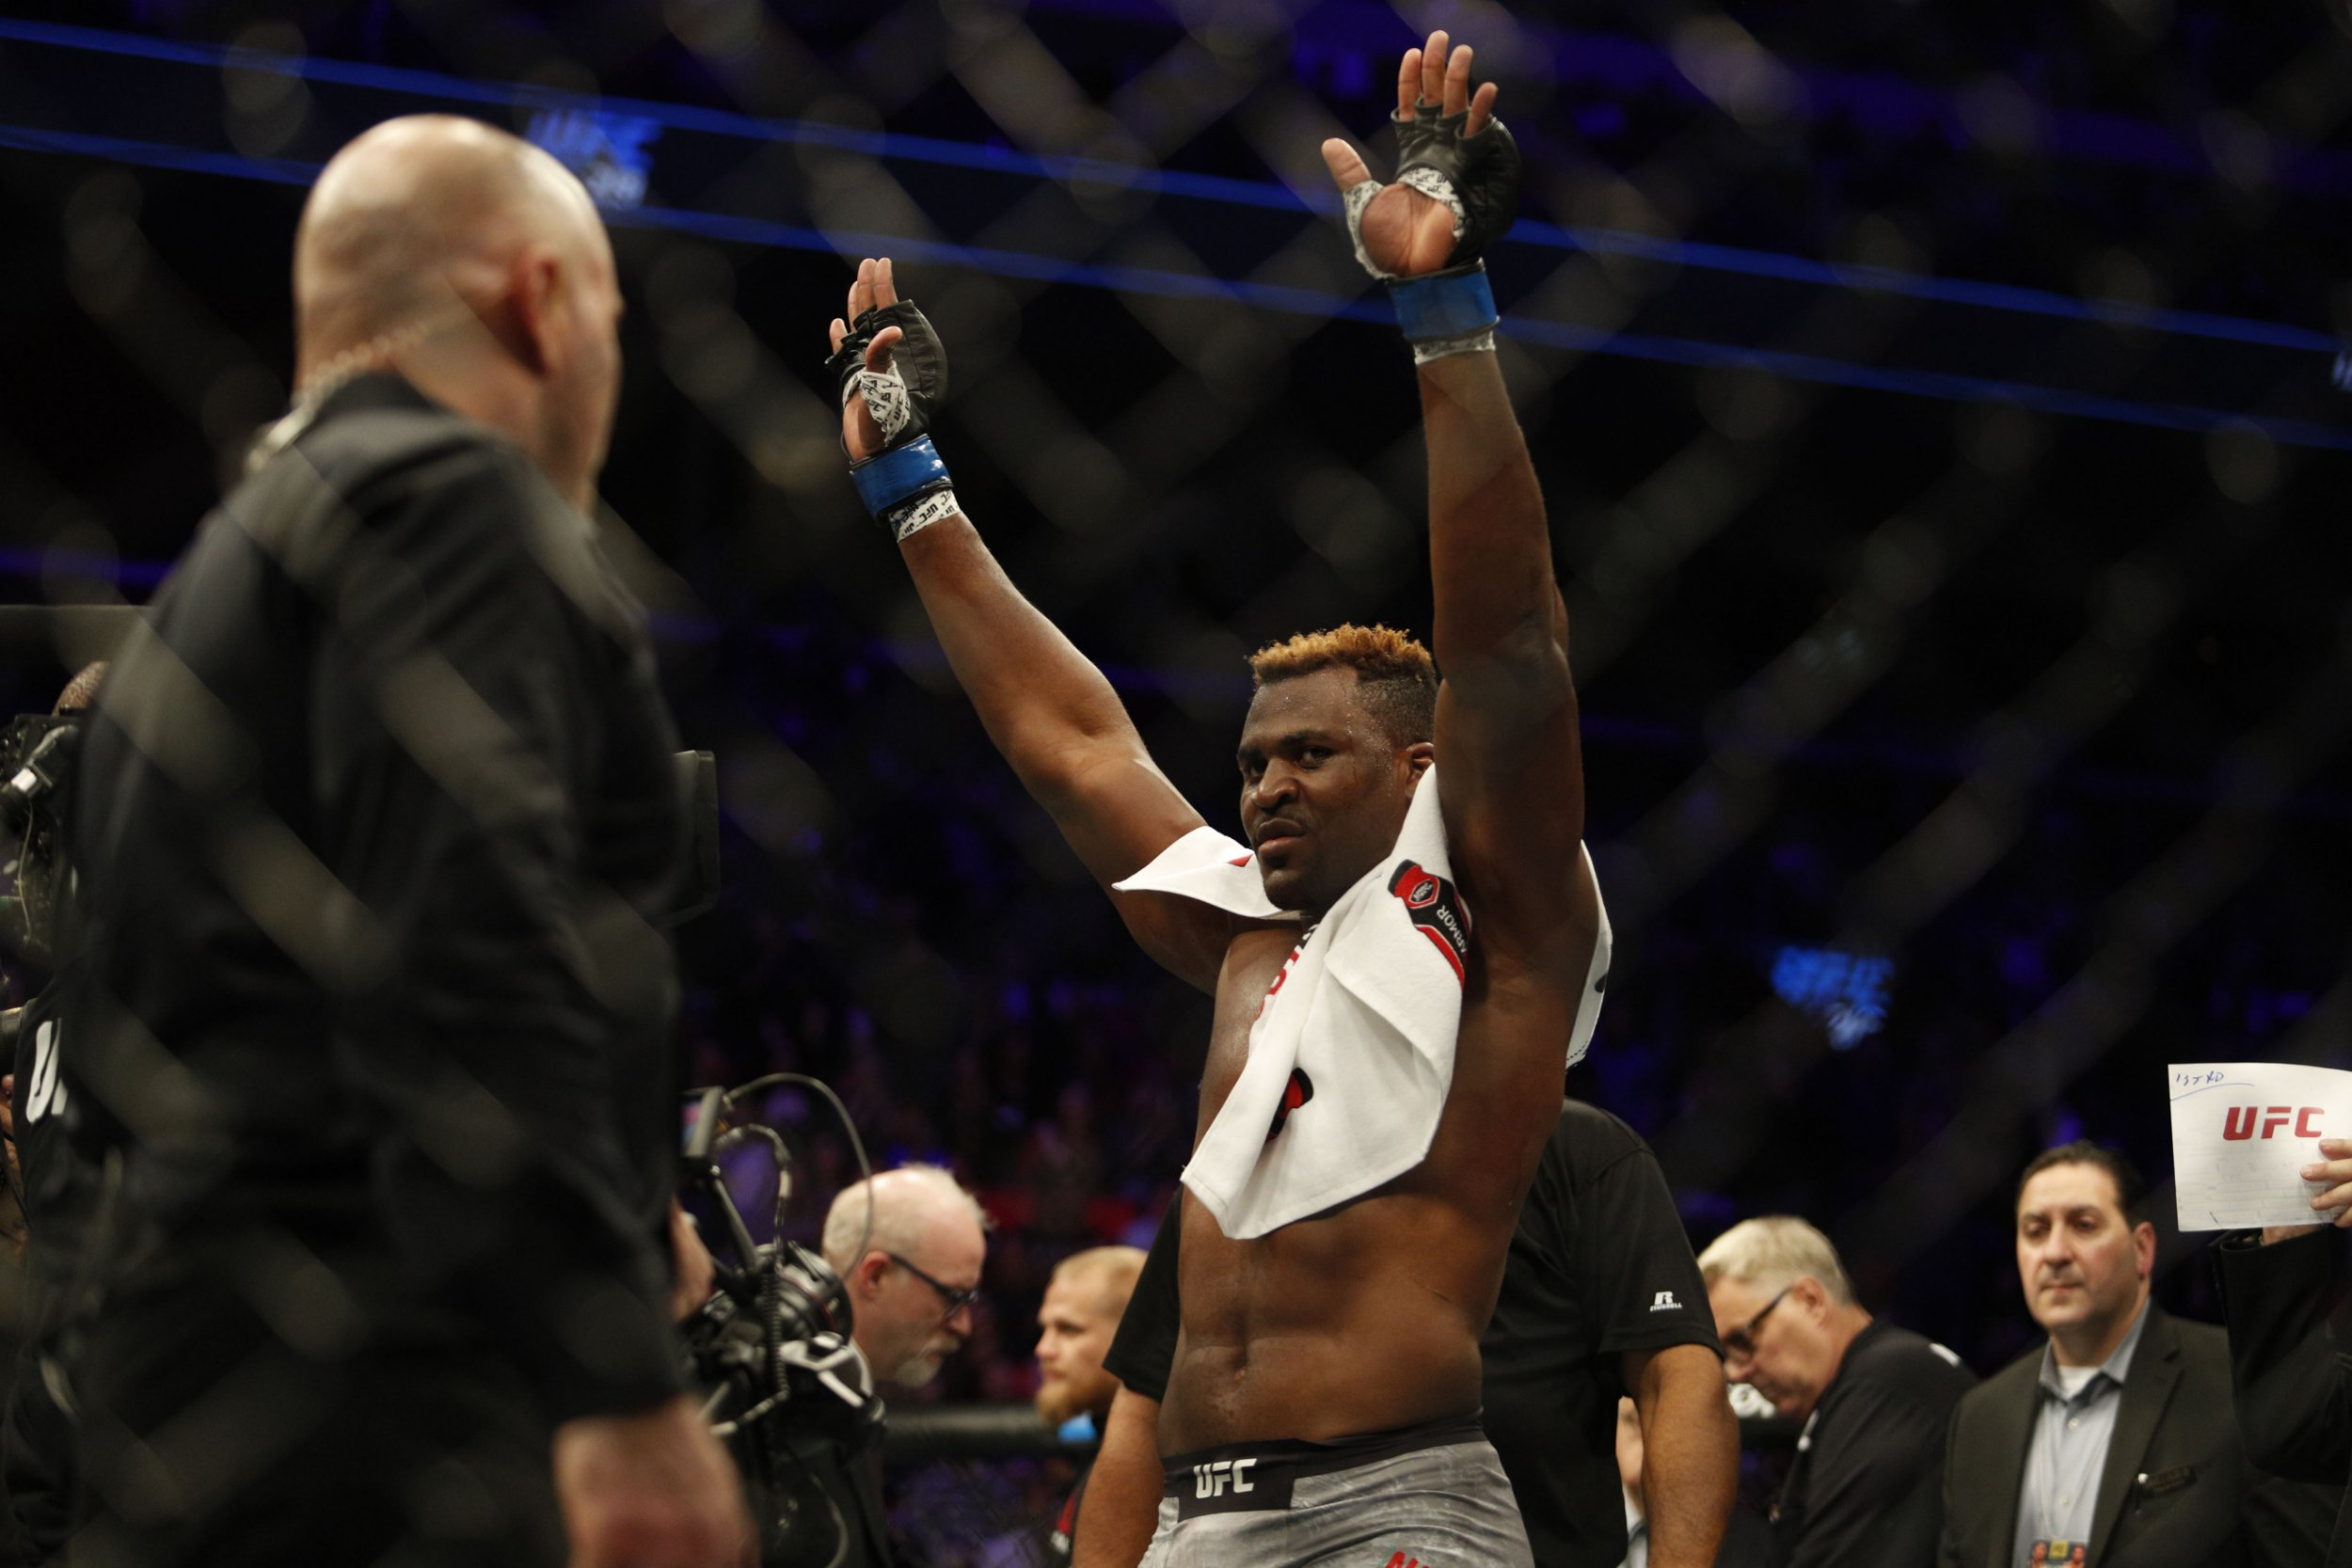 Francis Ngannou celebrates with his hands in the air and a towel round his neck